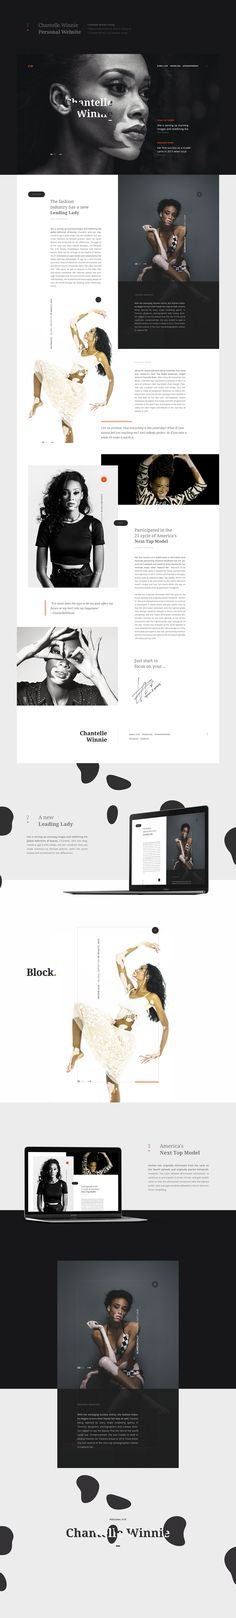 Chantelle Winnie Personal Website on Web Design Served